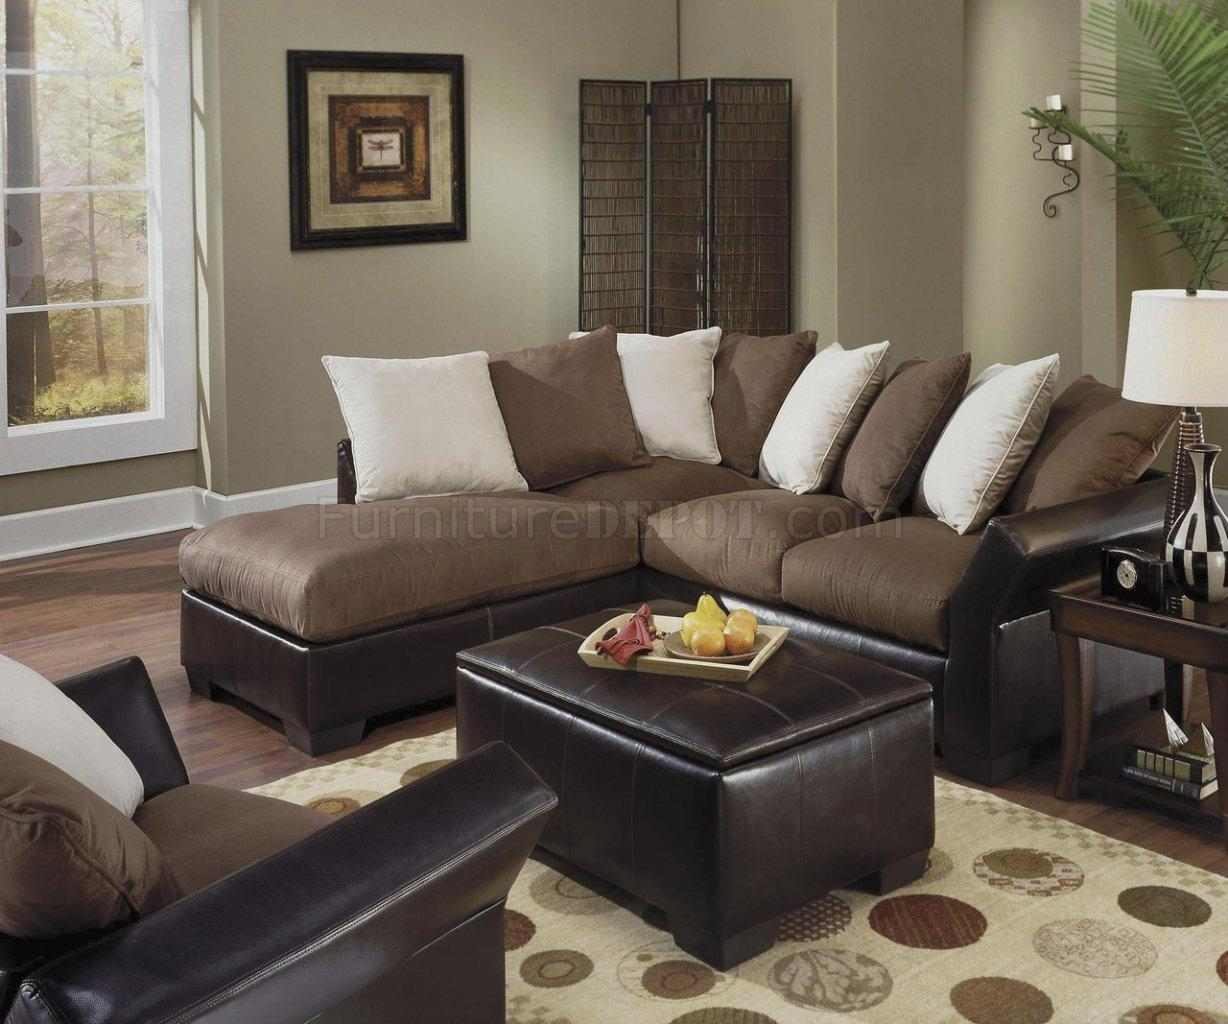 20 Best Collection Of Leather And Suede Sectional Sofa